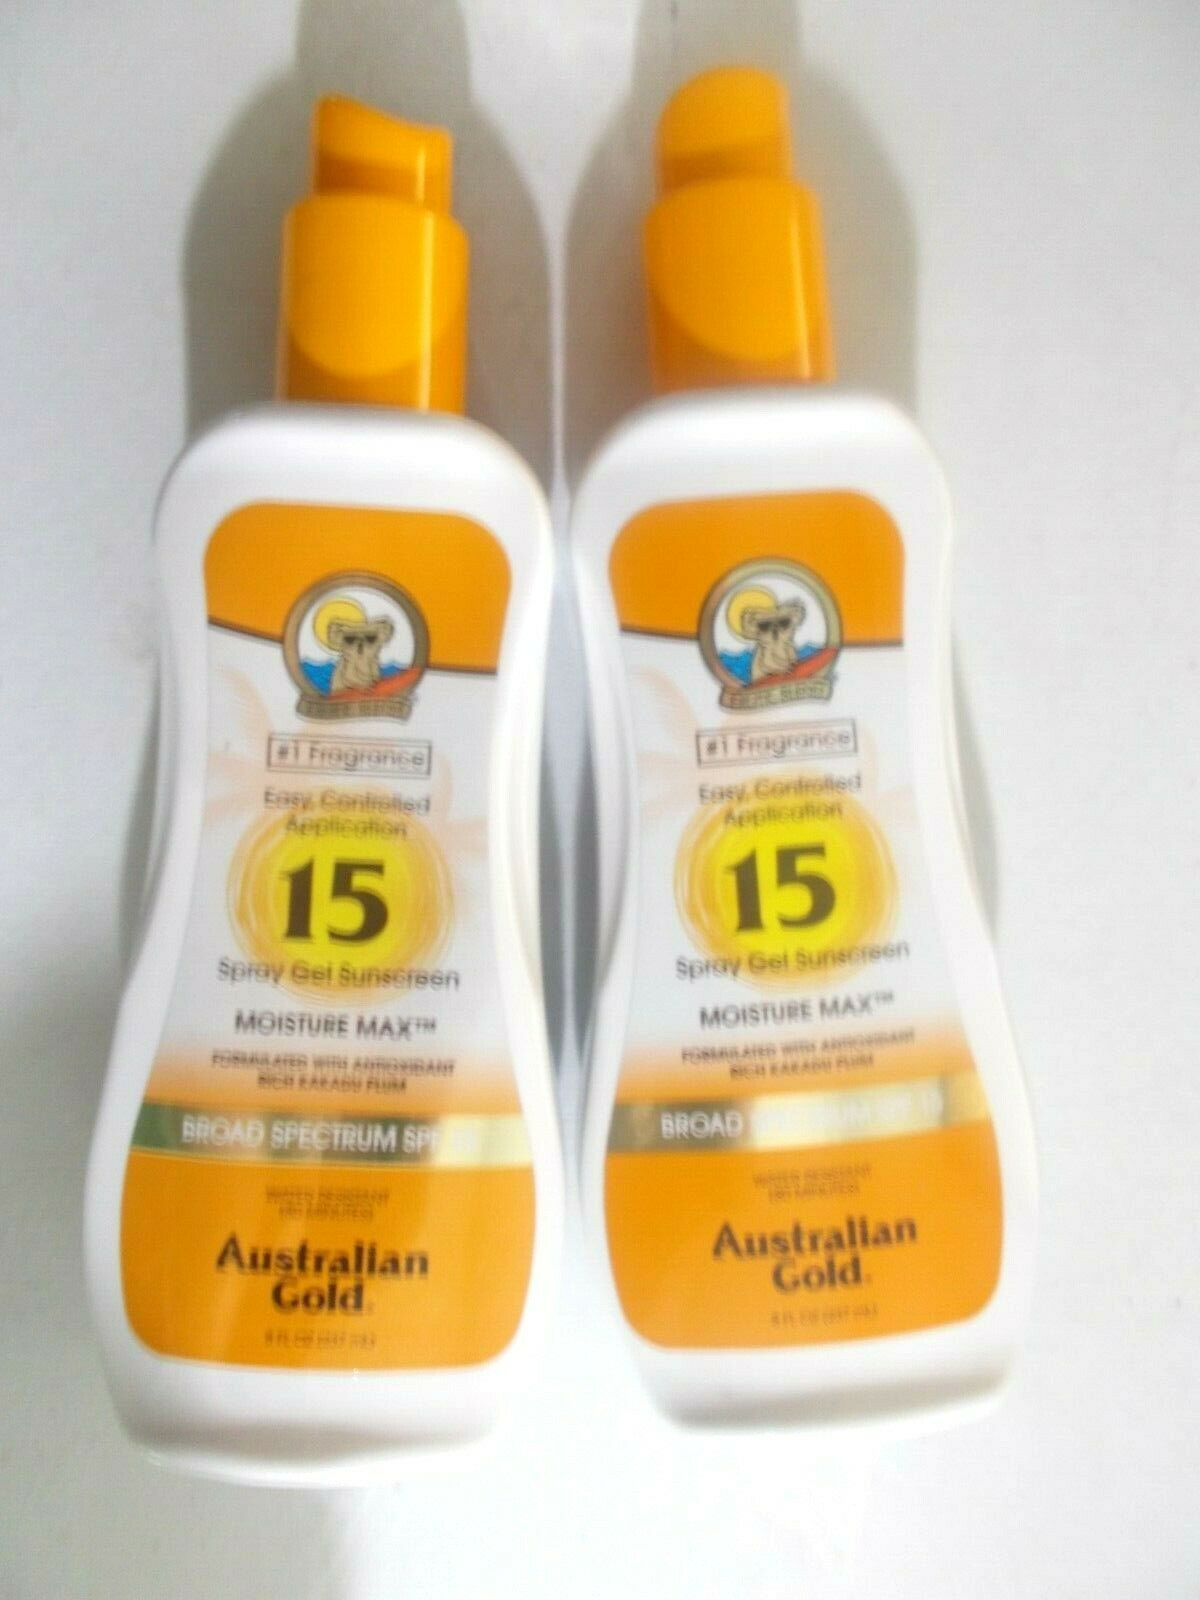 Australian Gold Exotic Blend Spray Gel Sunscreen Clear SPF 1